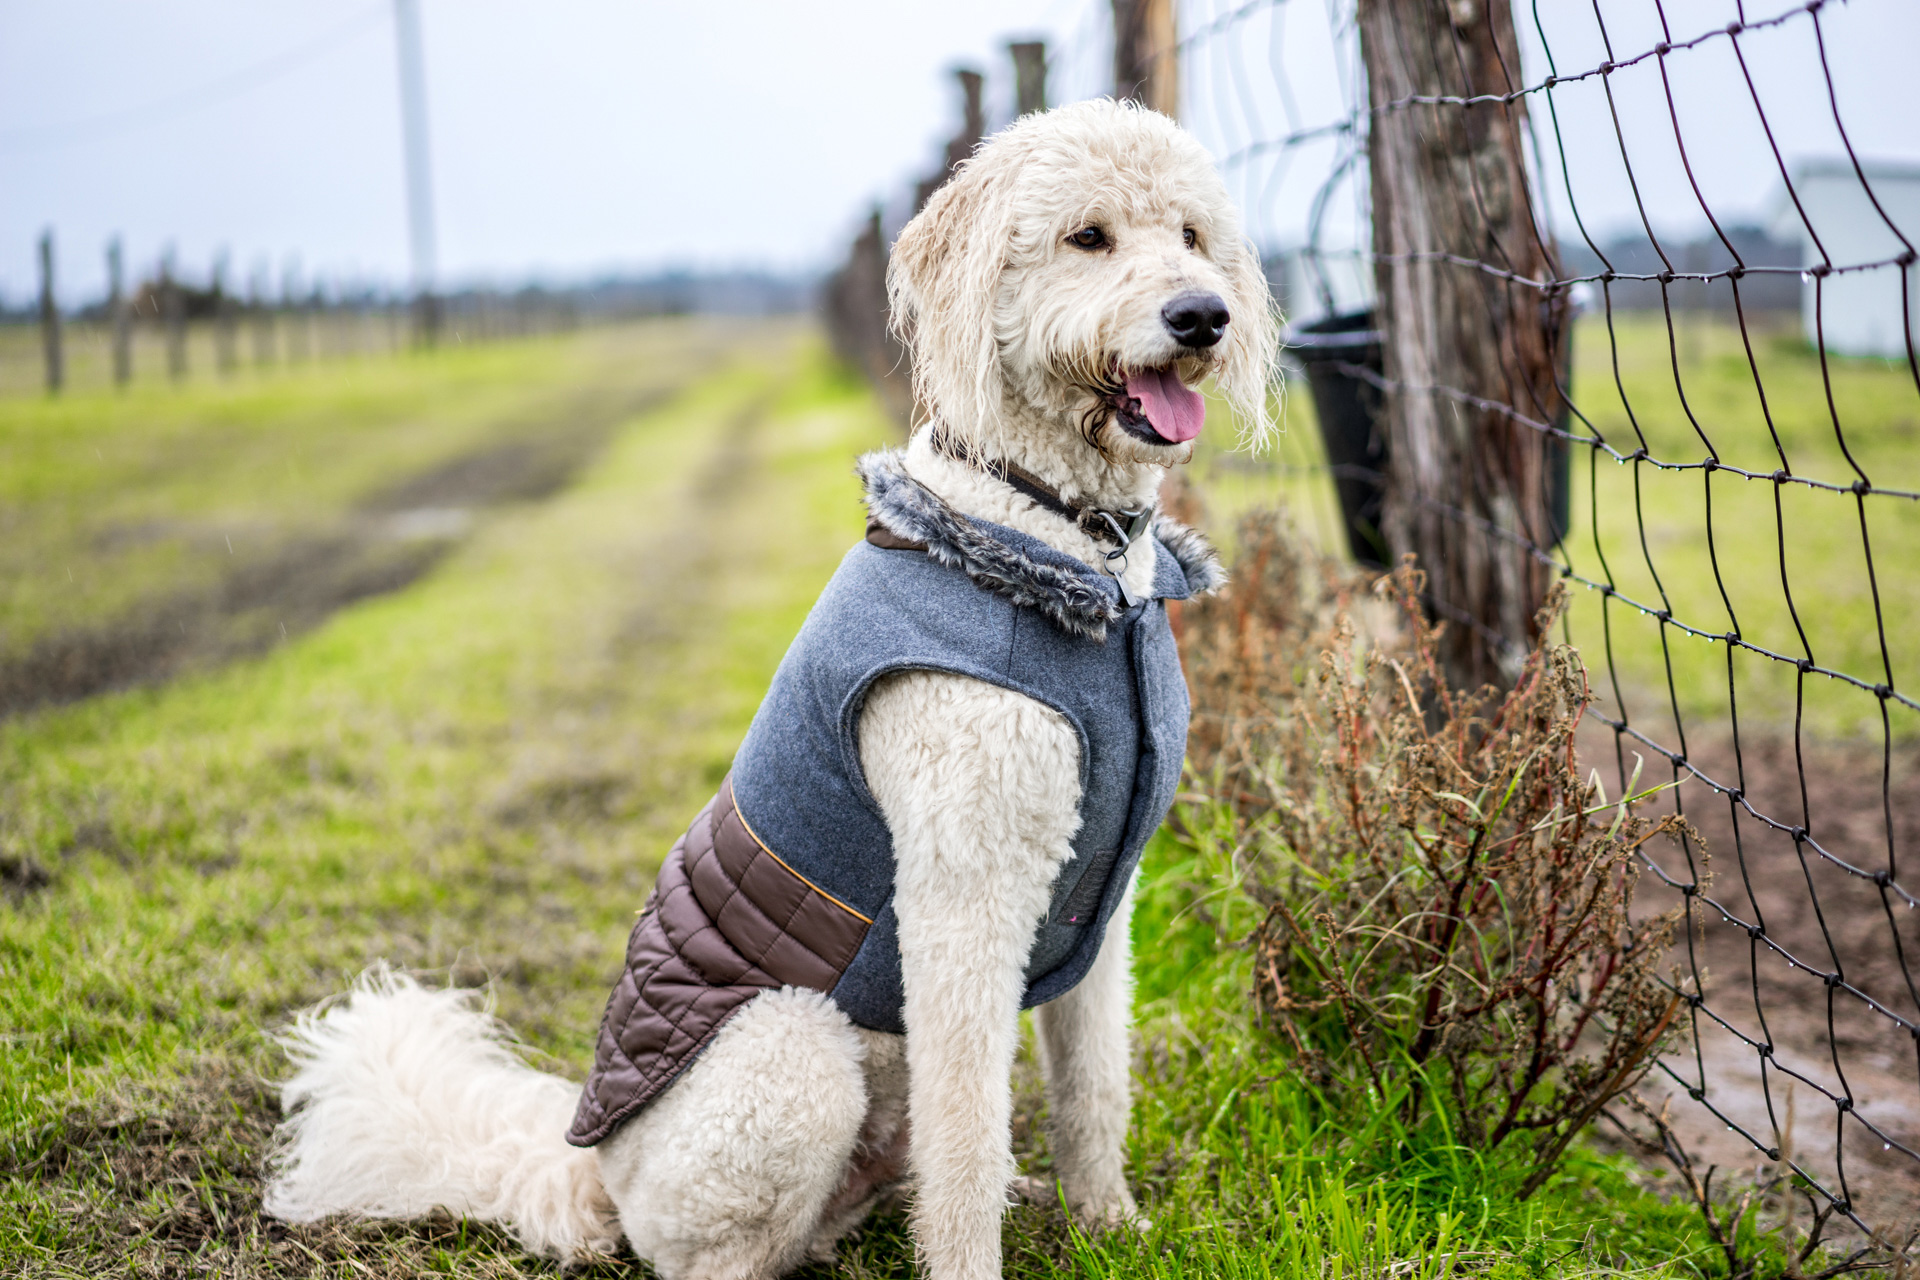 Pet Dog in Vest Portrait on Farm